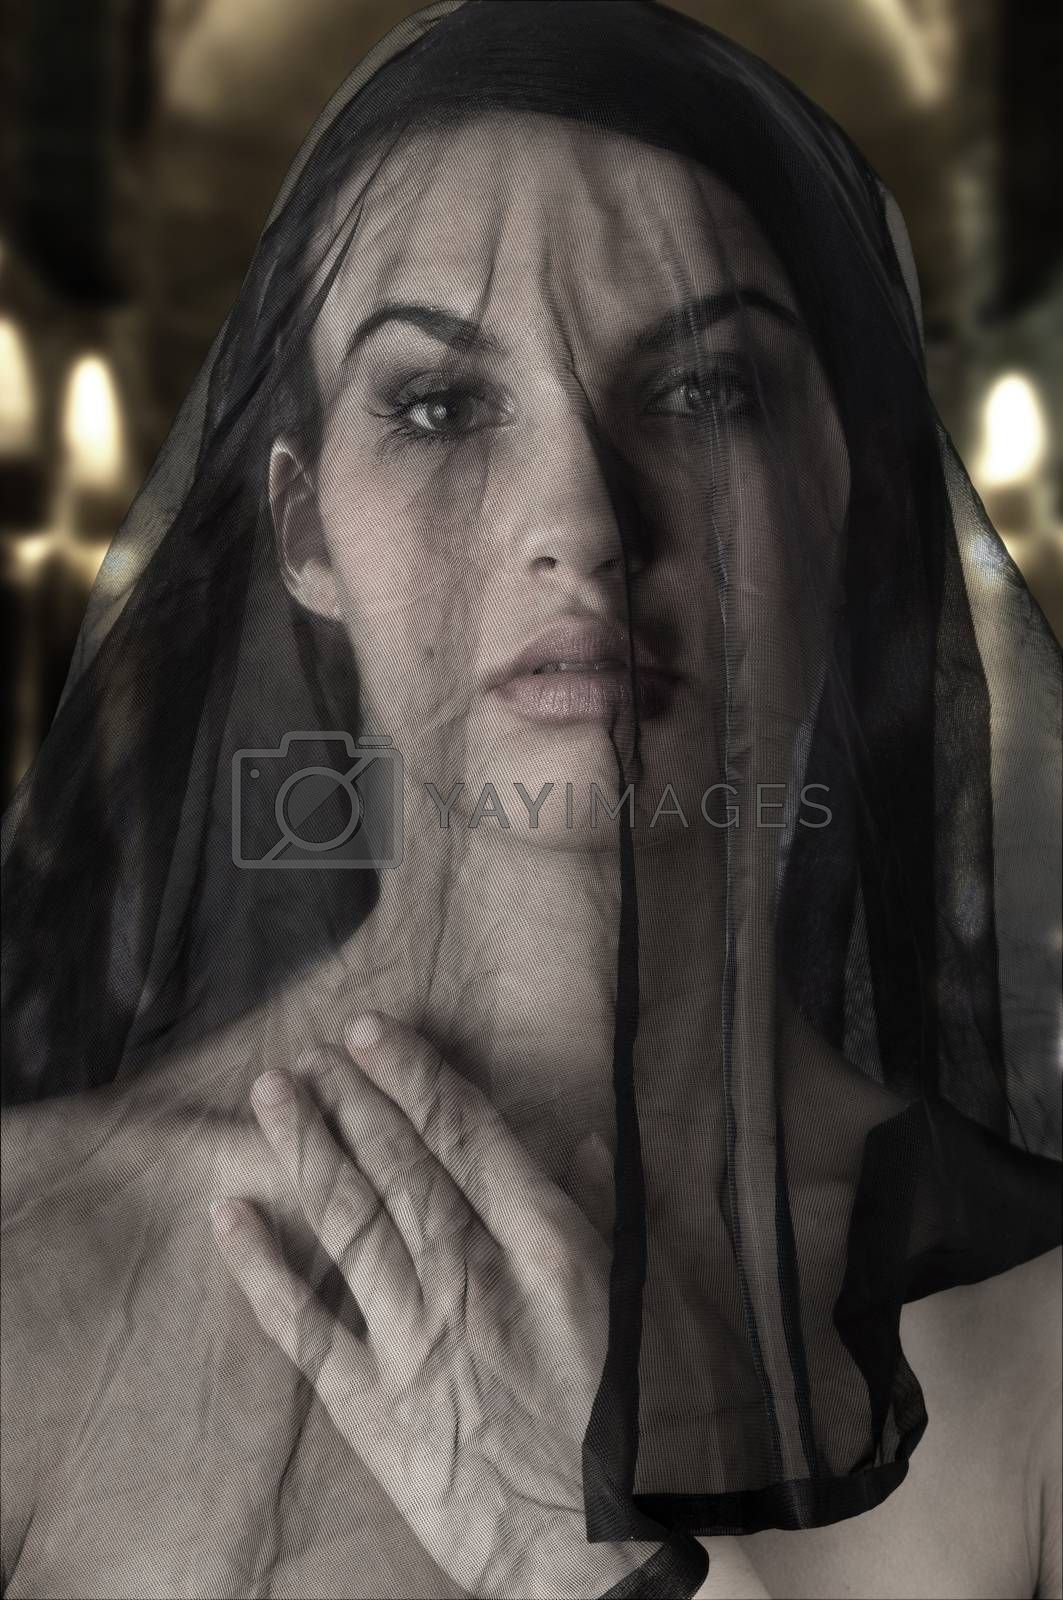 Royalty free image of the black wife by fotoCD